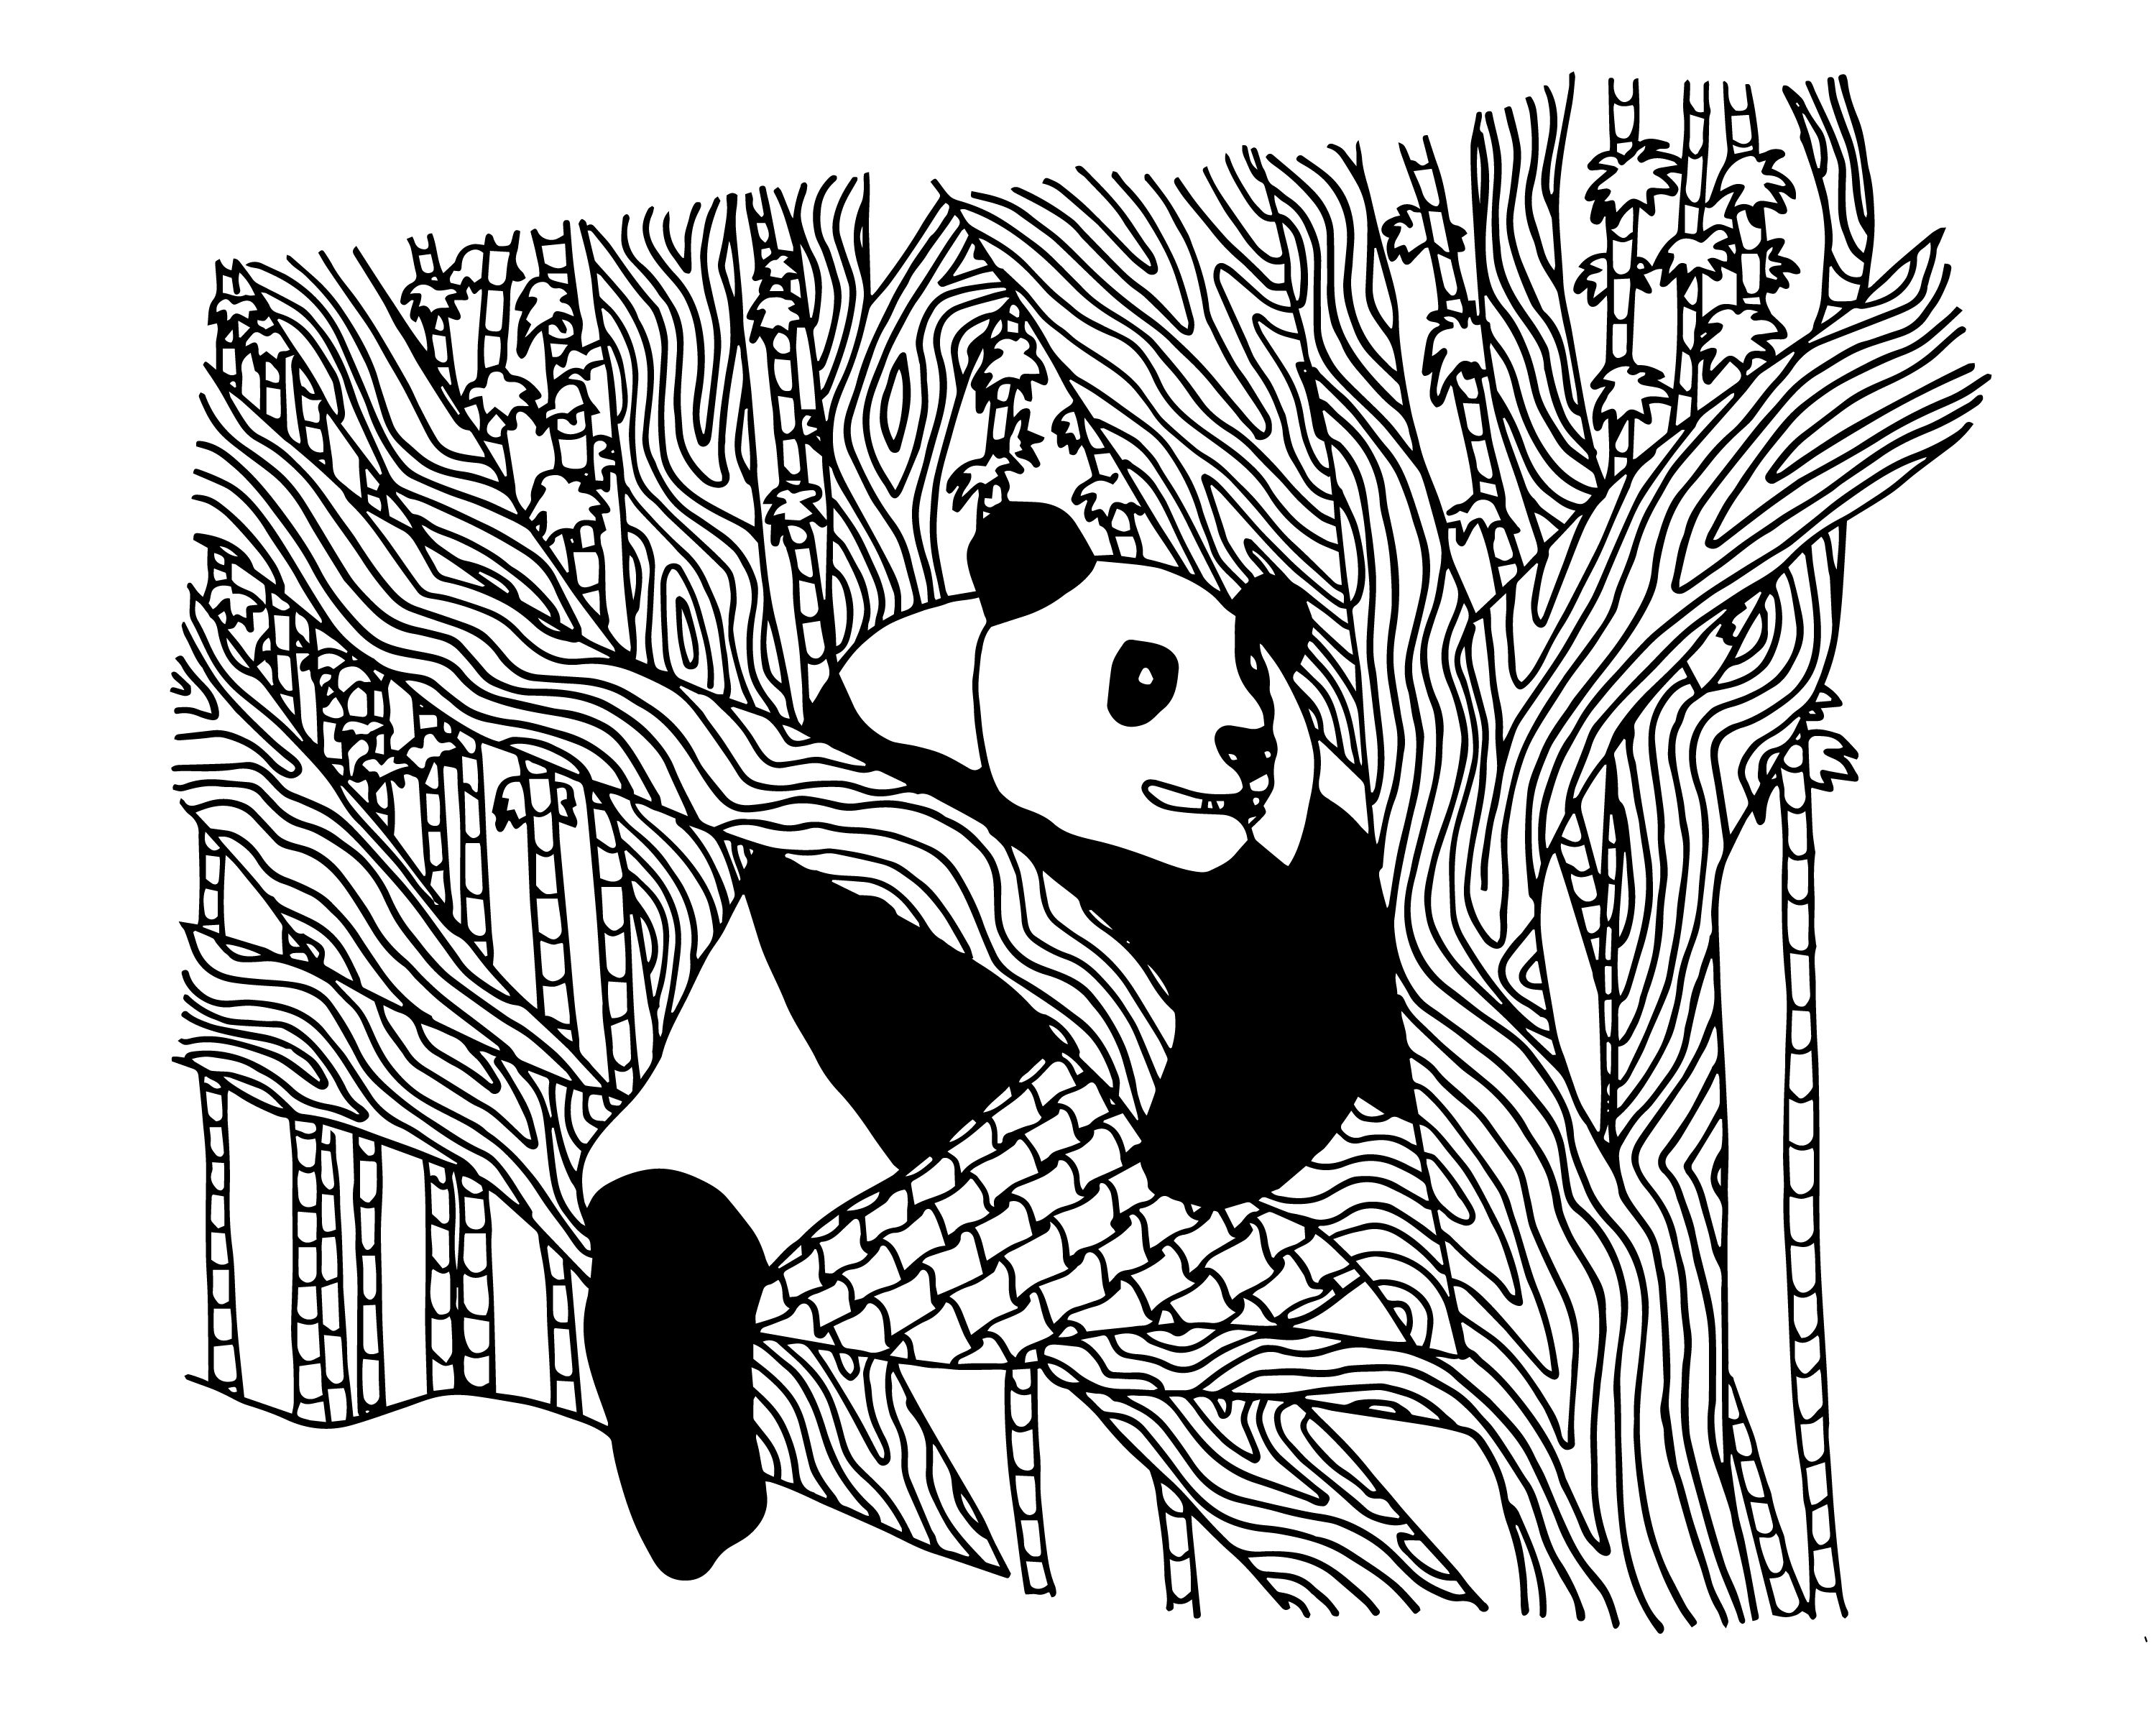 Free Panda Coloring Pages For Adults Free Printable Coloring Pages